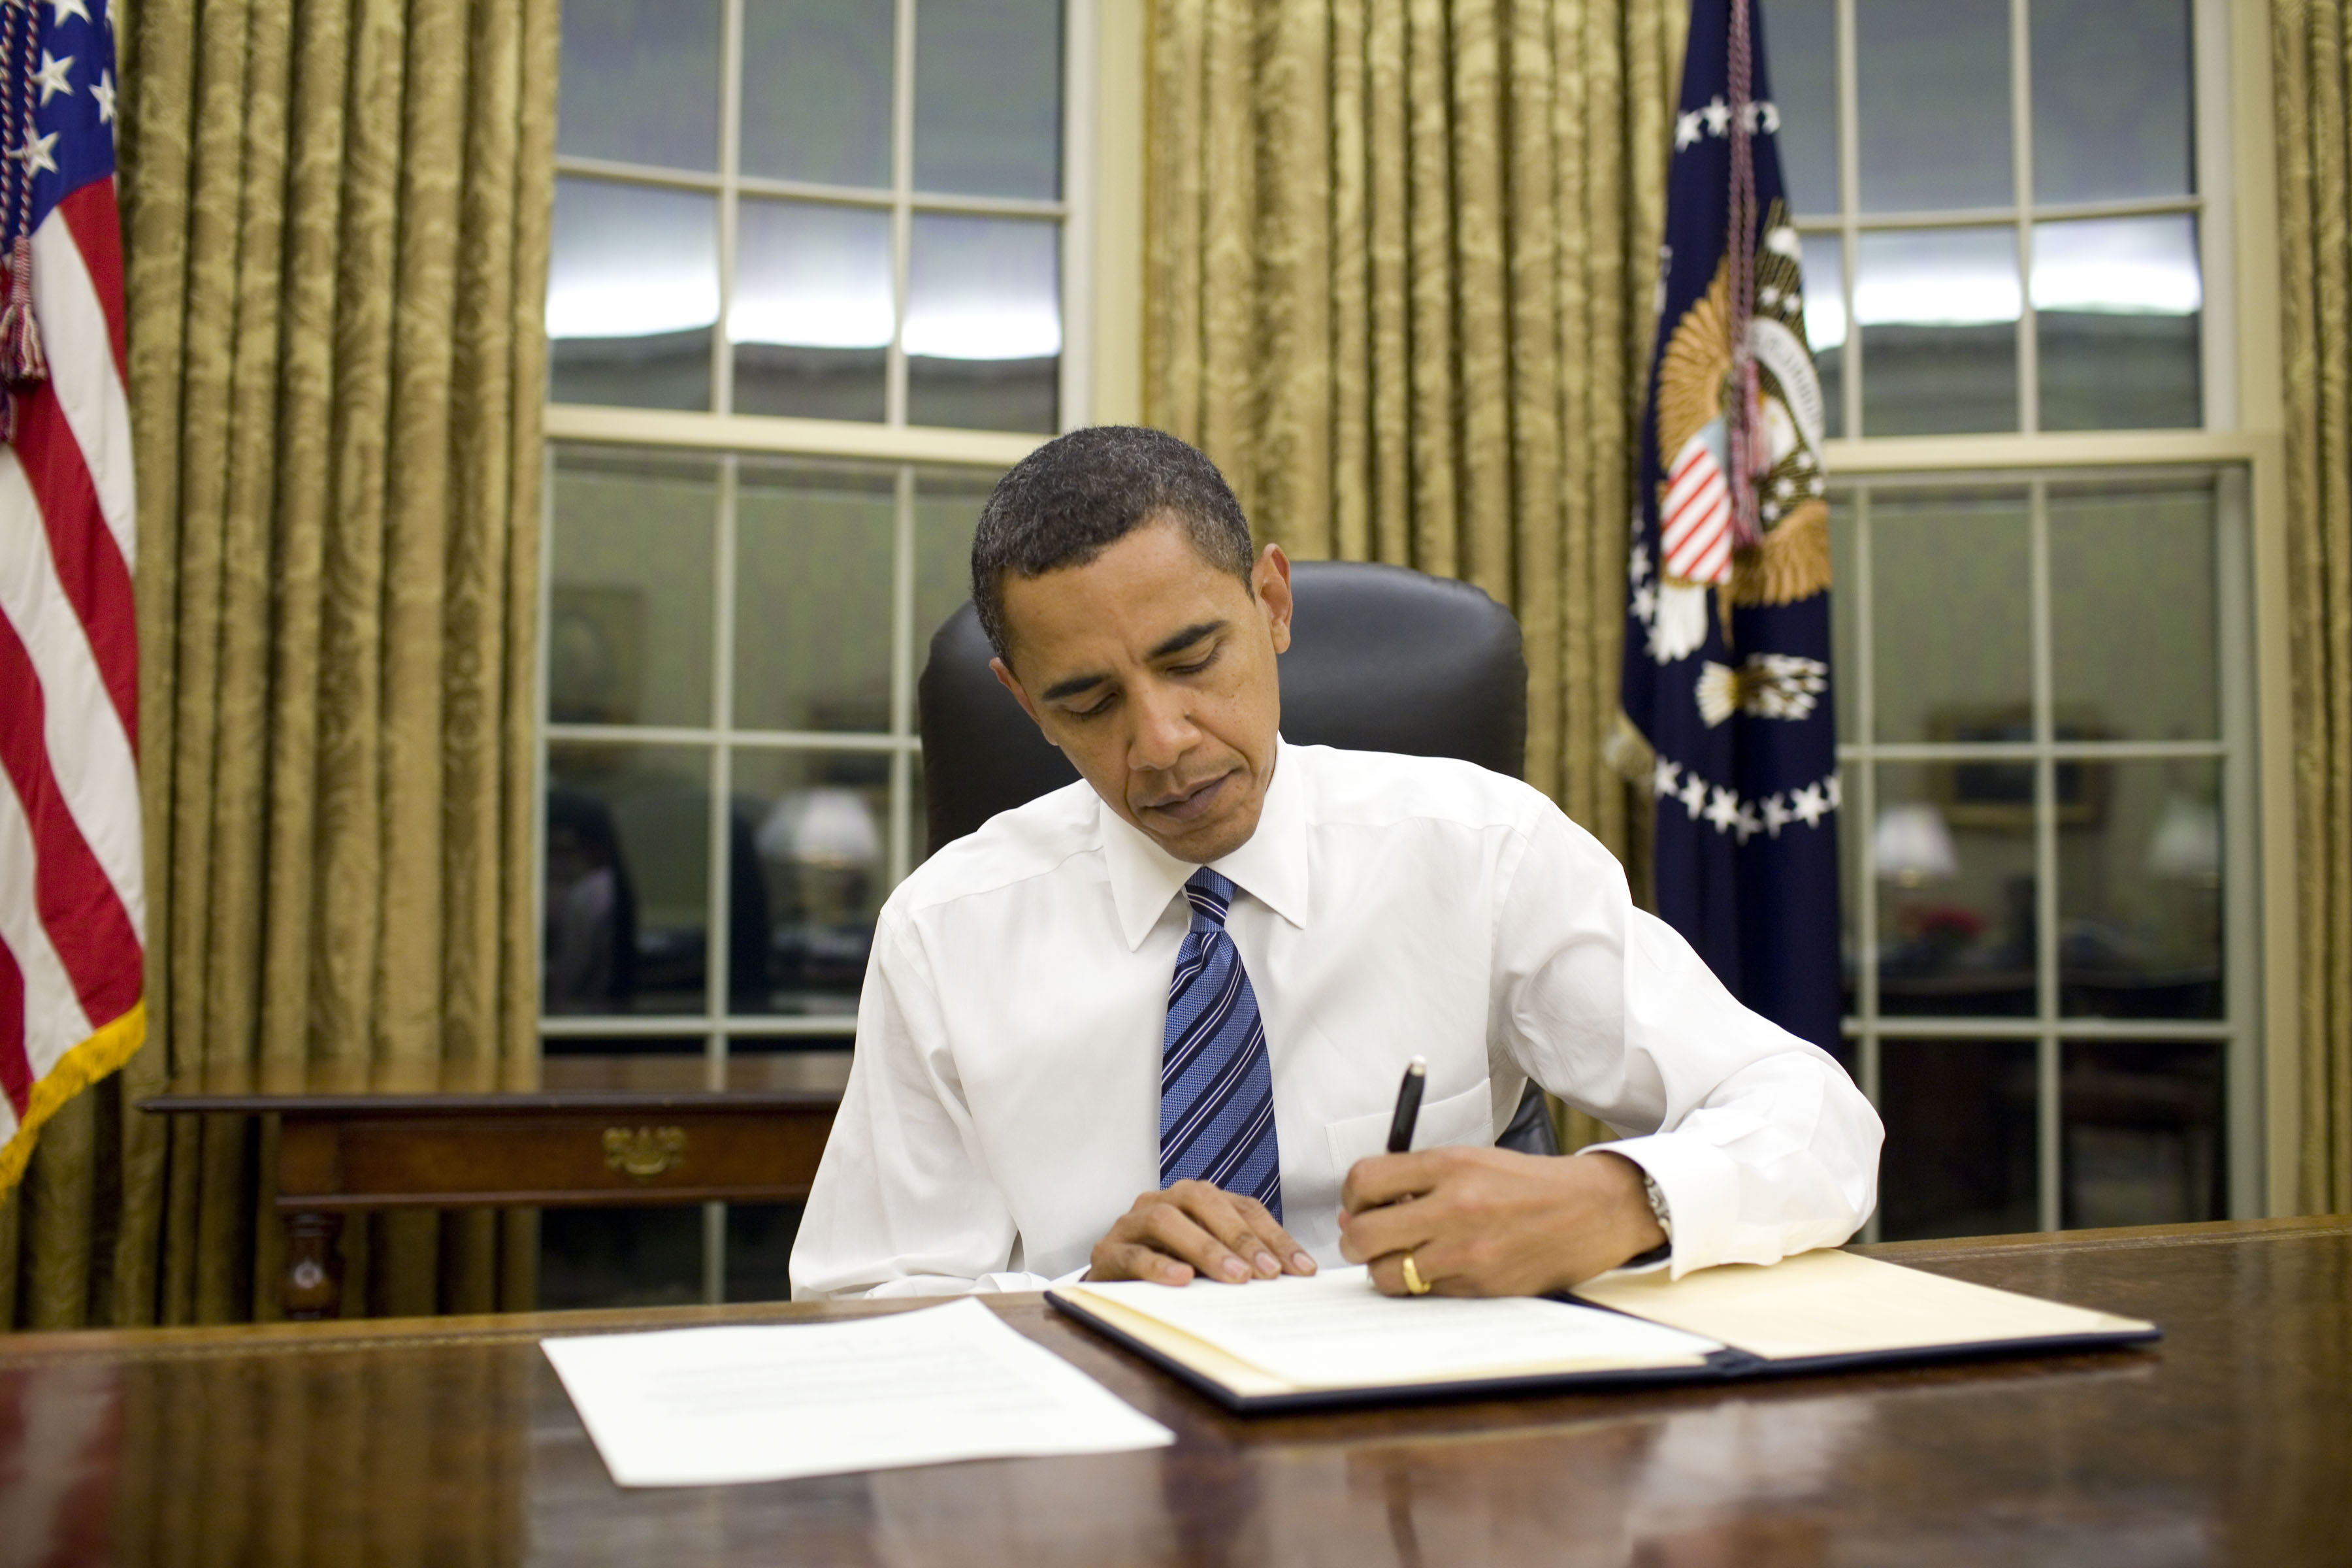 An immigration reform plan backed by Silicon Valley firms is one bill President Obama doesn't want to sign.